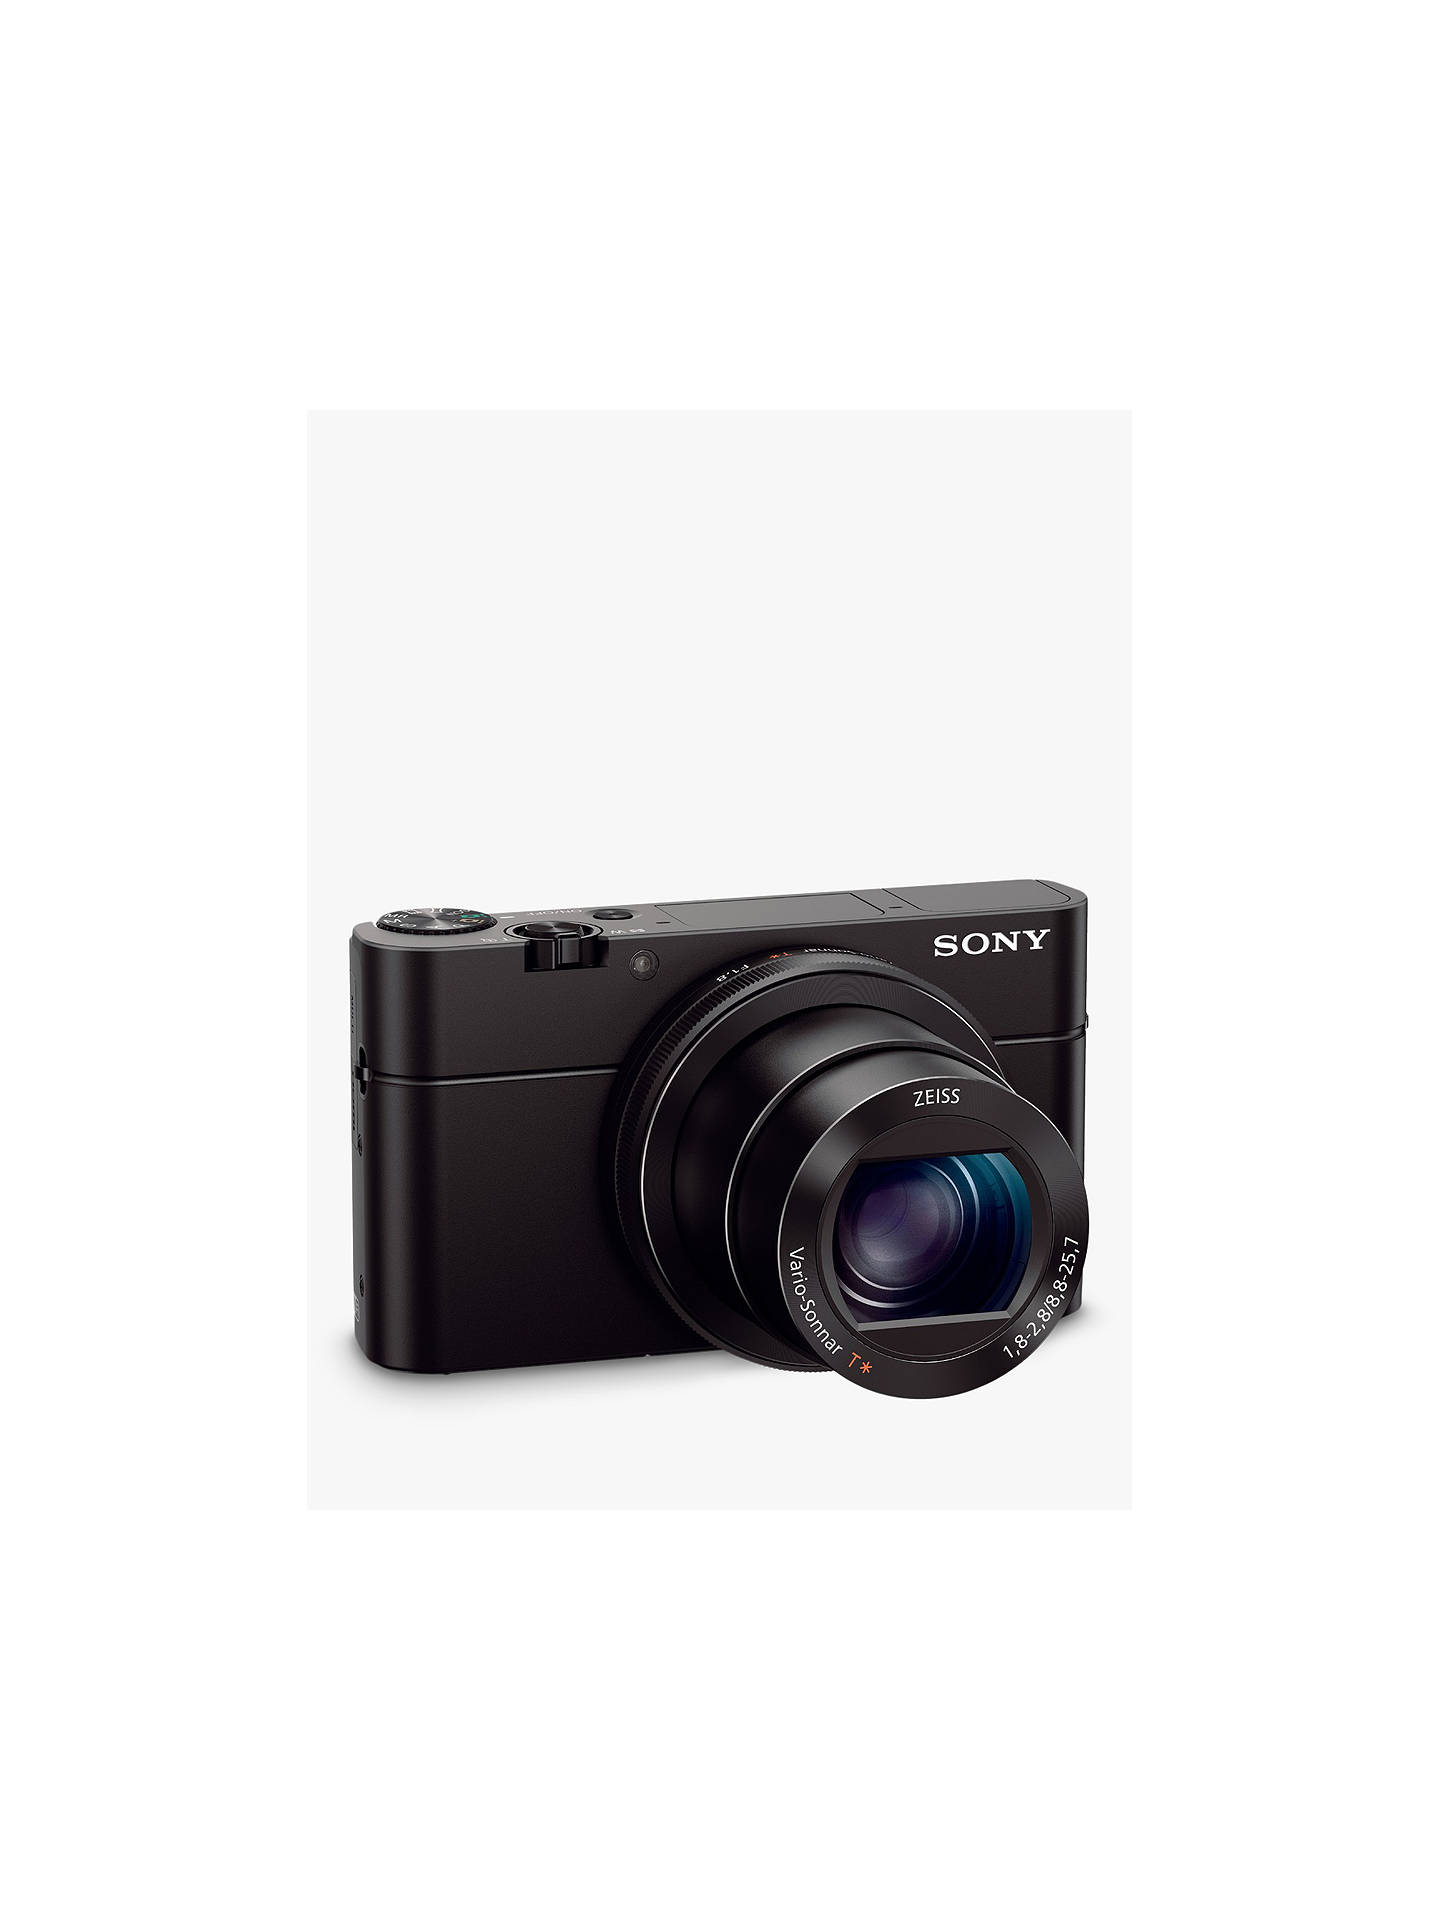 "Buy Sony Cyber-shot DSC-RX100 III Camera, HD 1080p, 20.1MP, 2.9x Optical Zoom, Wi-Fi, NFC, OLED EVF, 3"" Screen with Case & Attachment Grip Kit Online at johnlewis.com"